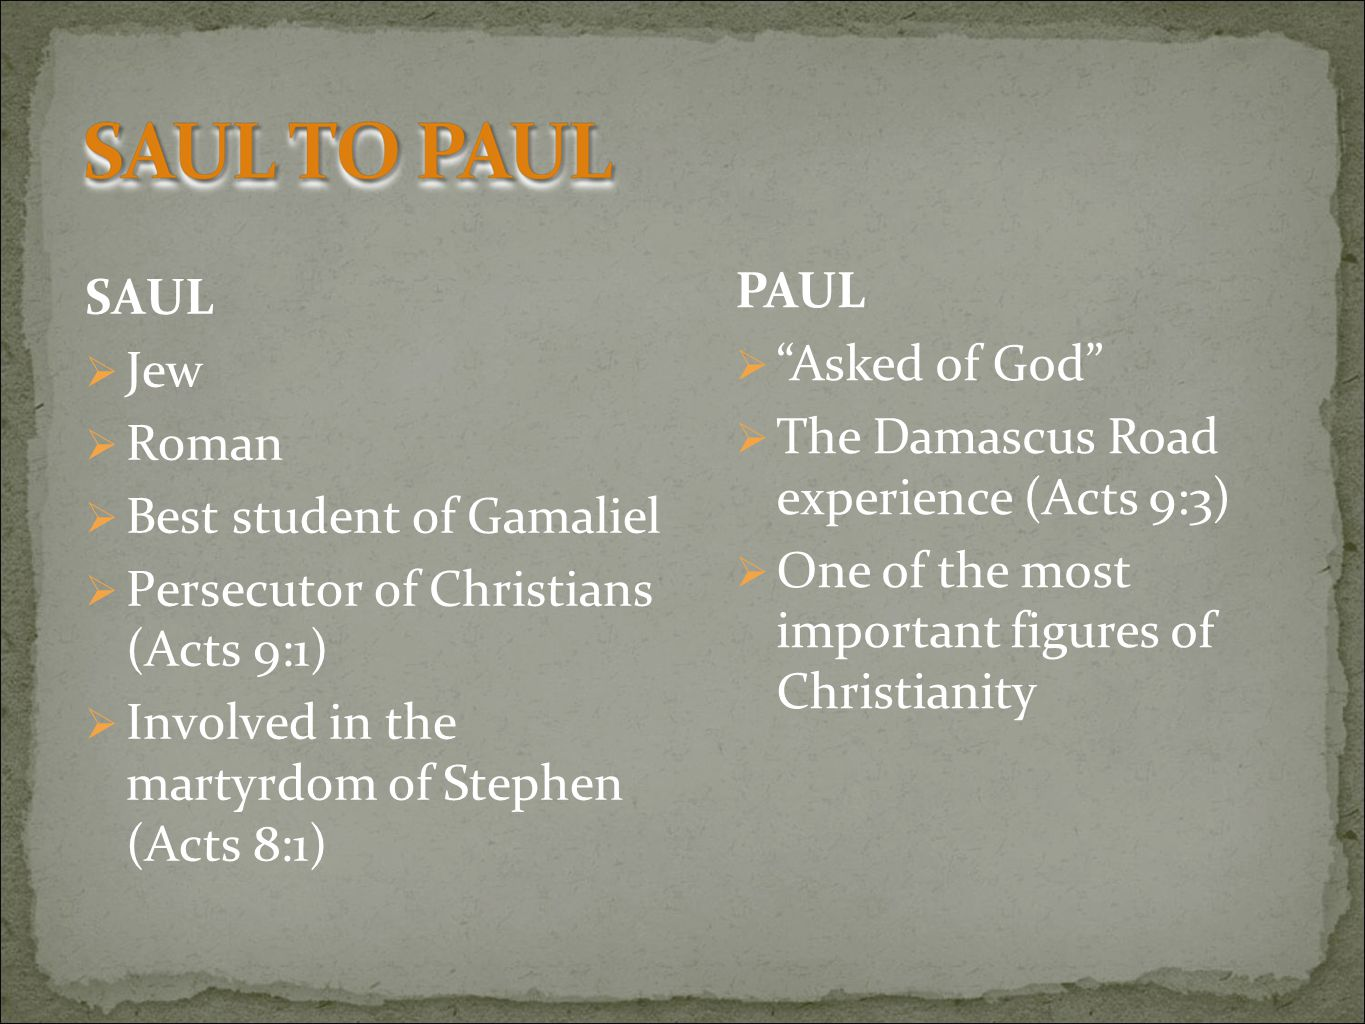 SAUL Jew. Roman. Best student of Gamaliel. Persecutor of Christians (Acts 9:1) Involved in the martyrdom of Stephen (Acts 8:1)